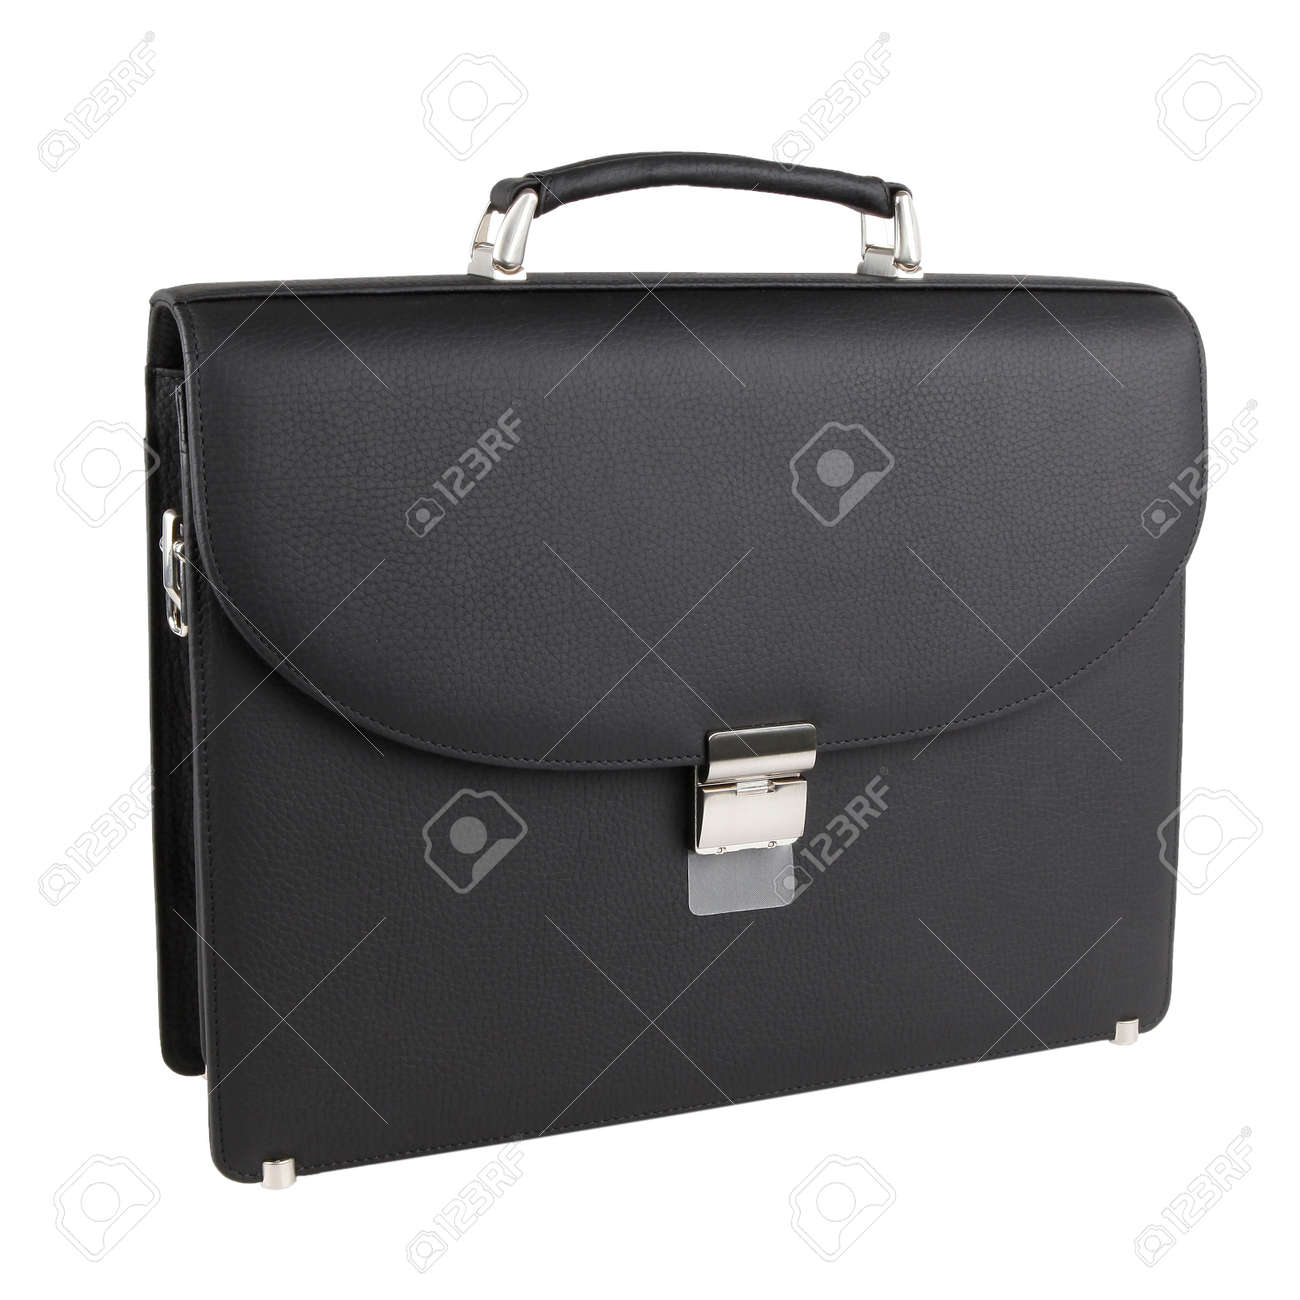 New fashion male business bag or briefcase in black leather. Without shadows. Isolated on white background - 135069683